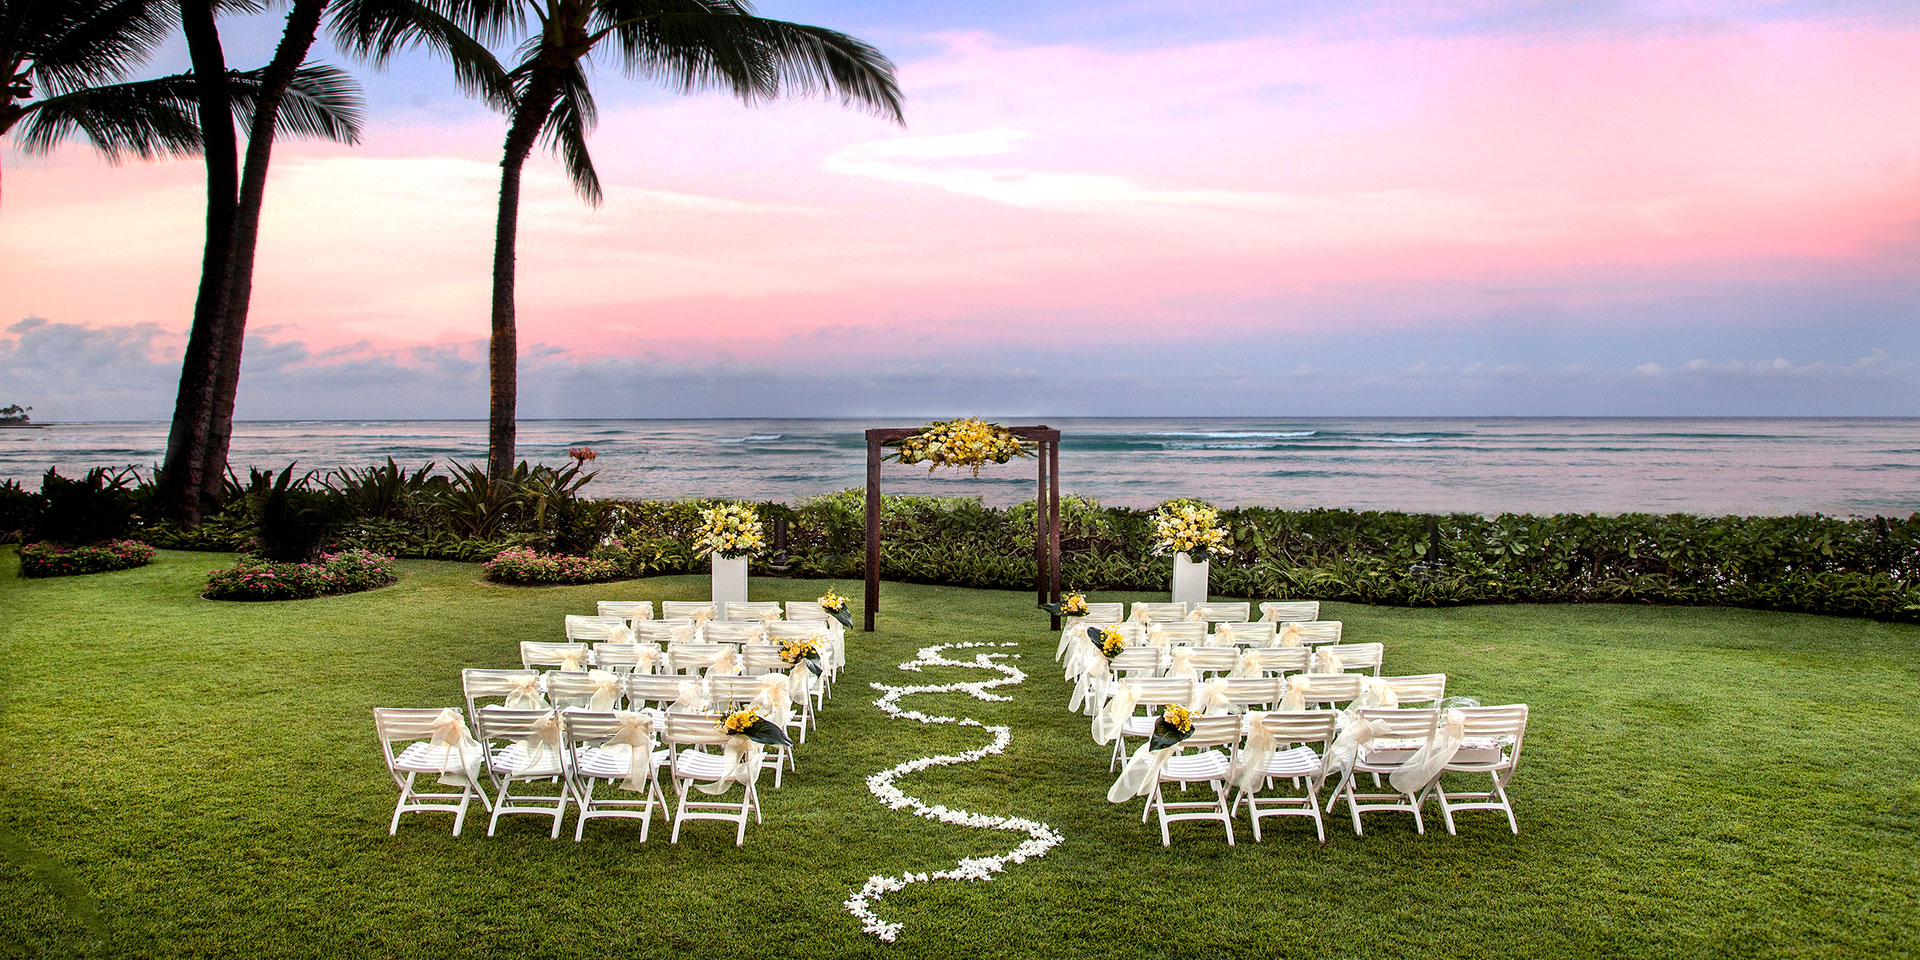 Planning A Destination Wedding Check Out These 6 Most